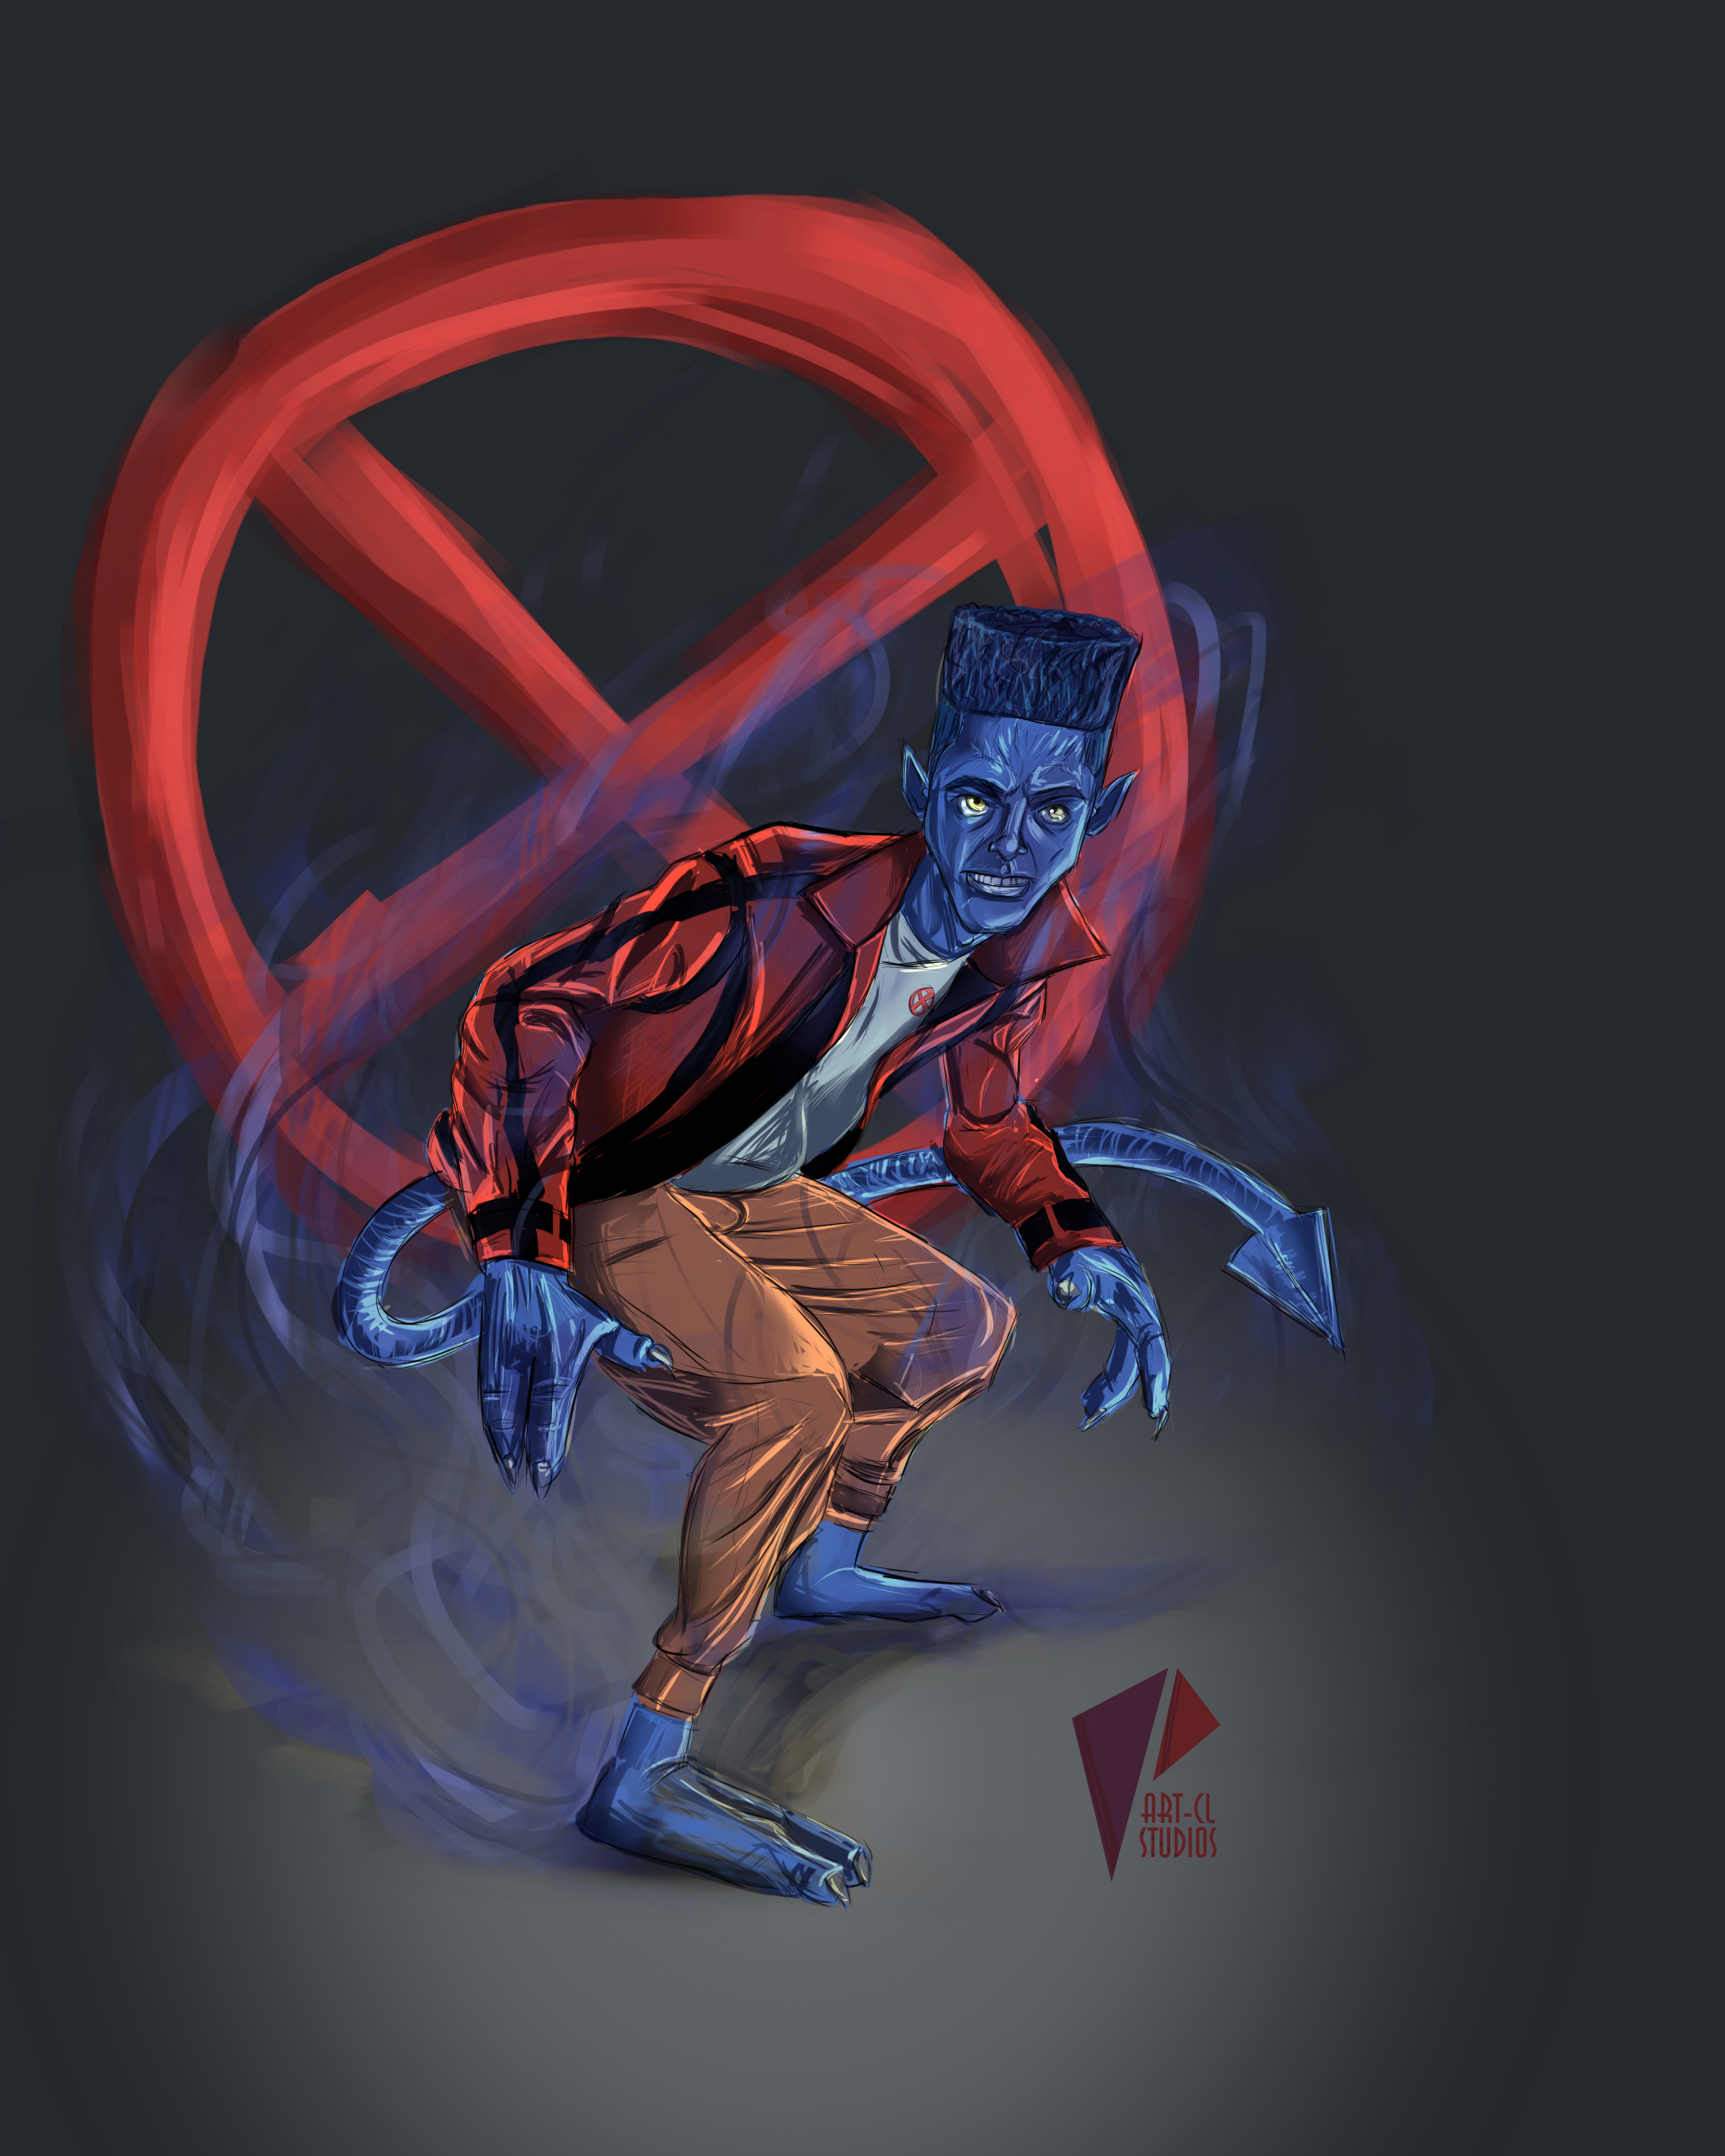 X-men Nightcrawler